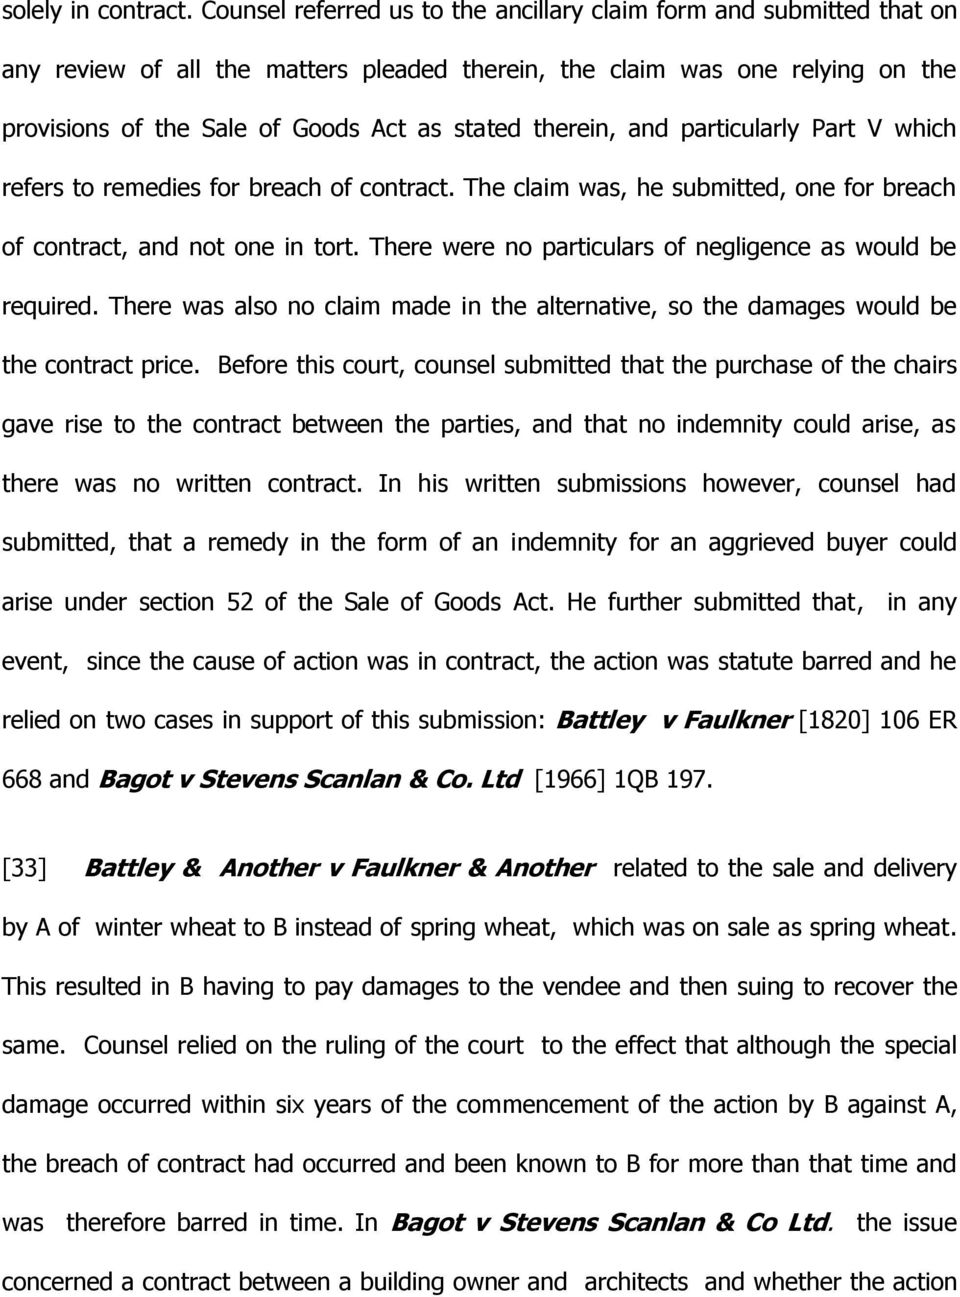 therein, and particularly Part V which refers to remedies for breach of contract. The claim was, he submitted, one for breach of contract, and not one in tort.